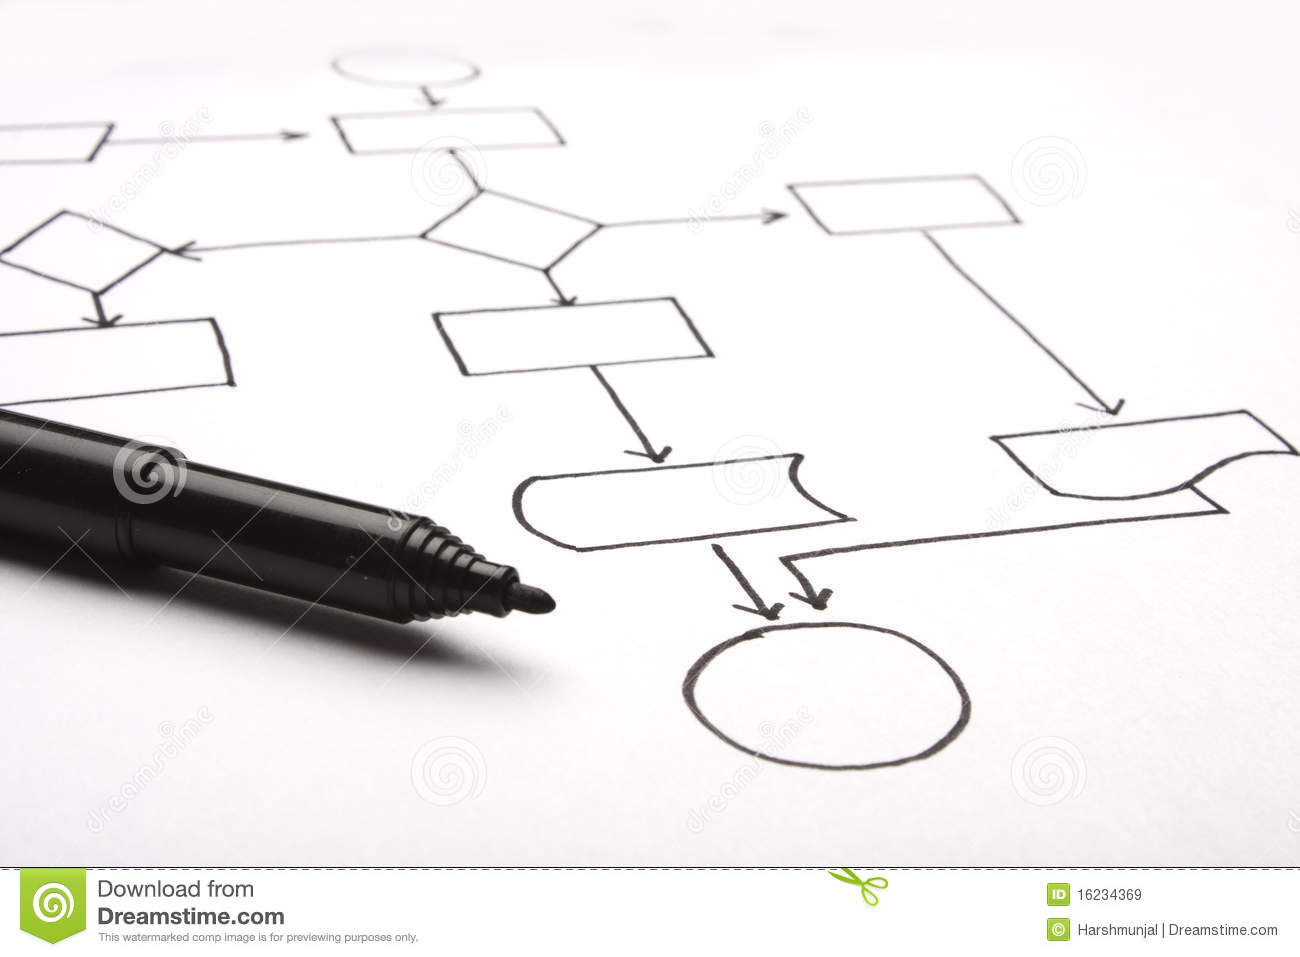 Flow chart stock image. Image of showing, strategy